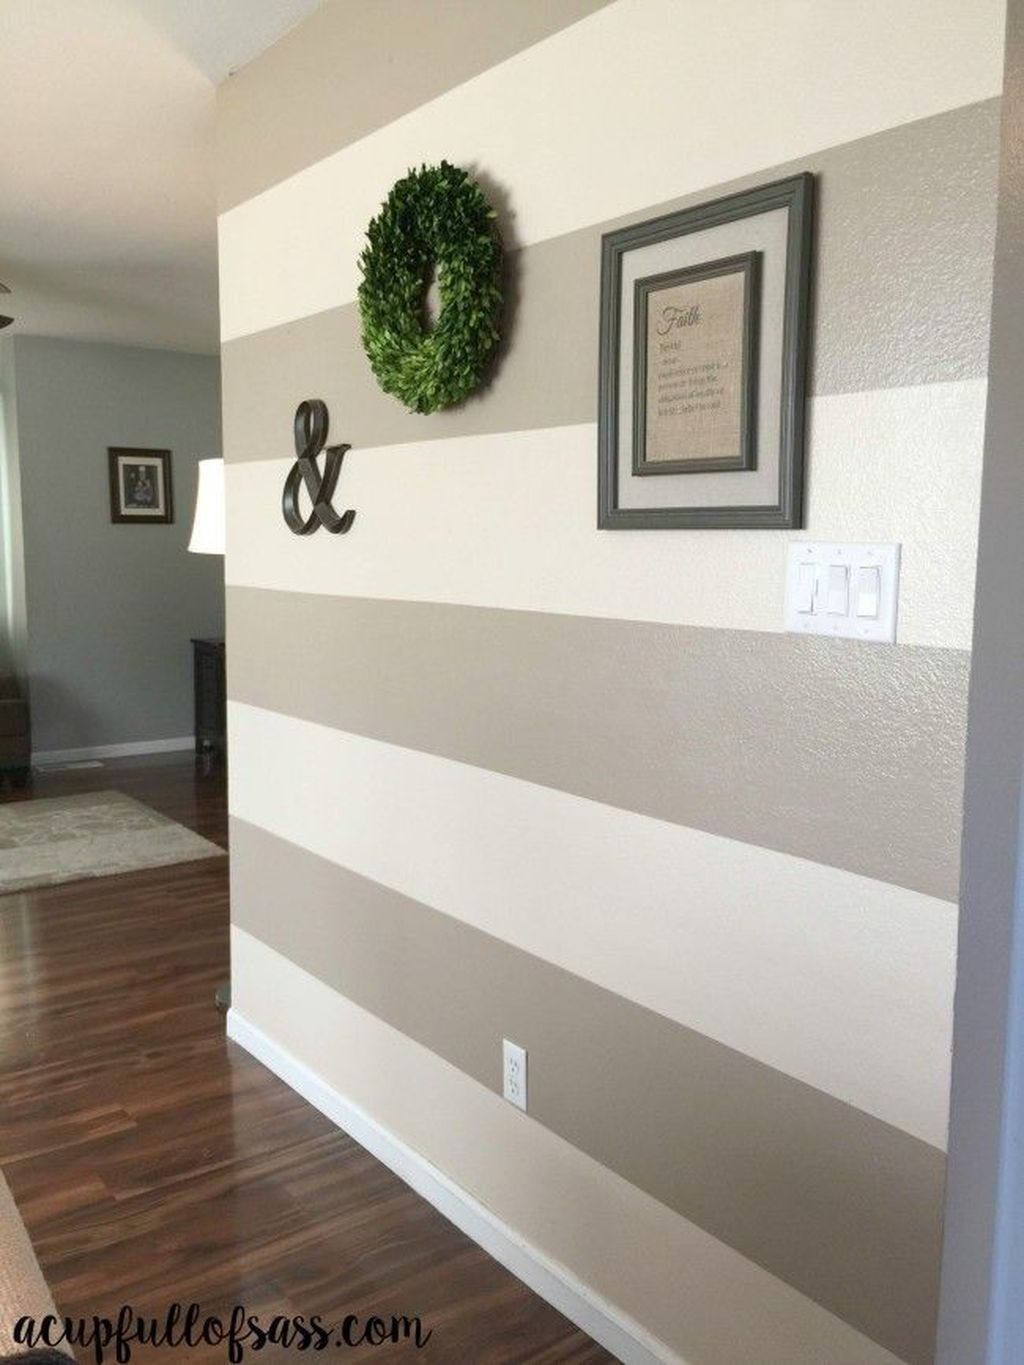 48 Artsy Wall Painting Ideas For Your Home | Wall paintings, Walls ...